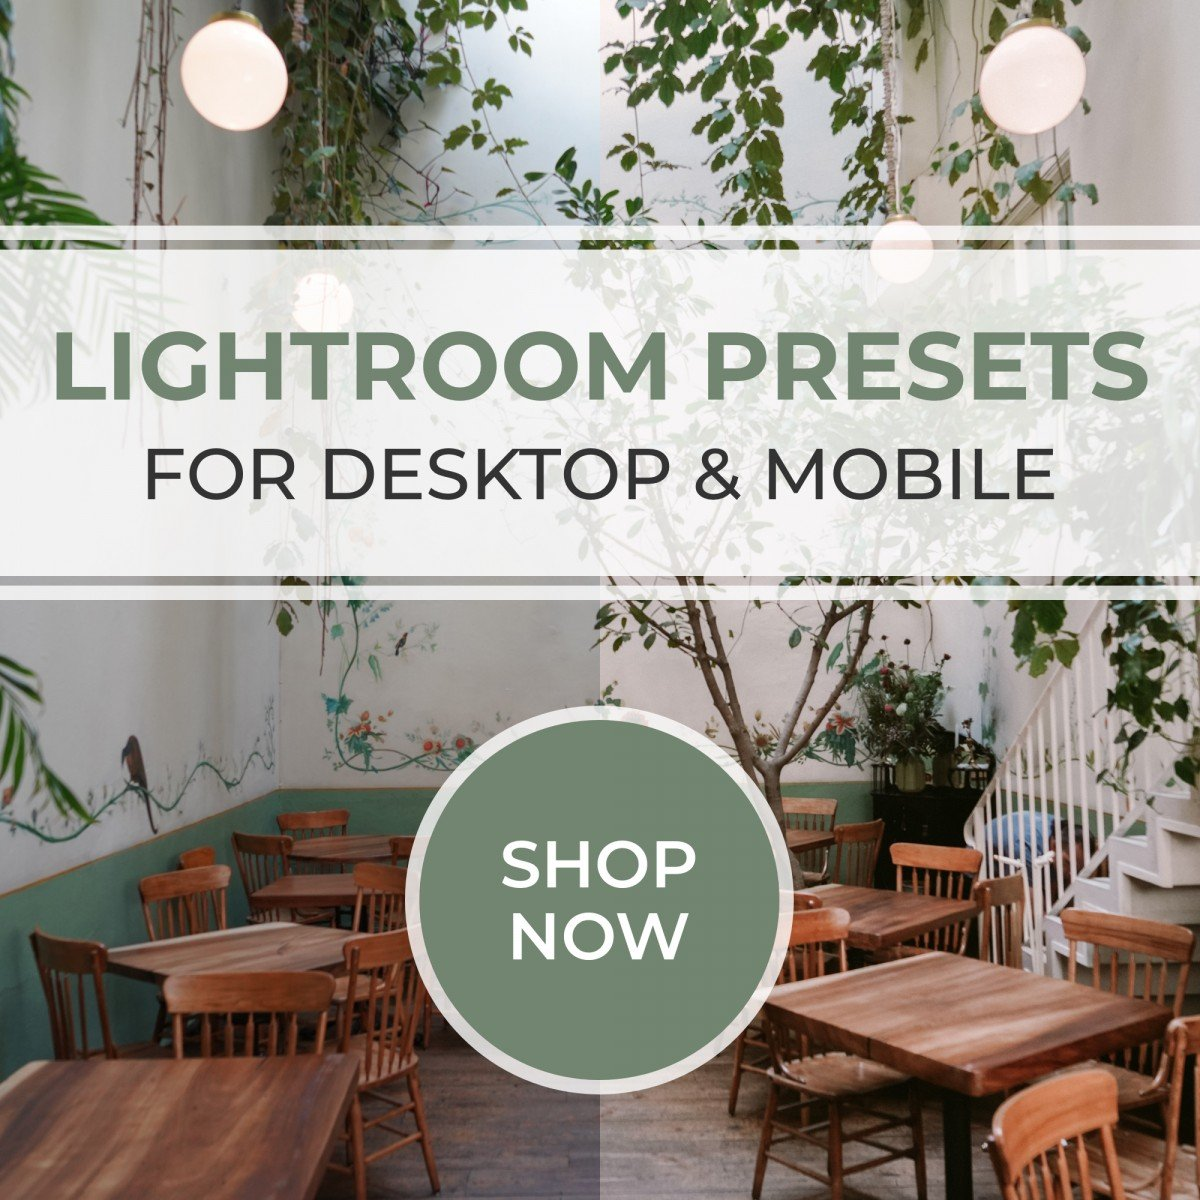 Shop Lightroom Presets for Desktop and Mobile